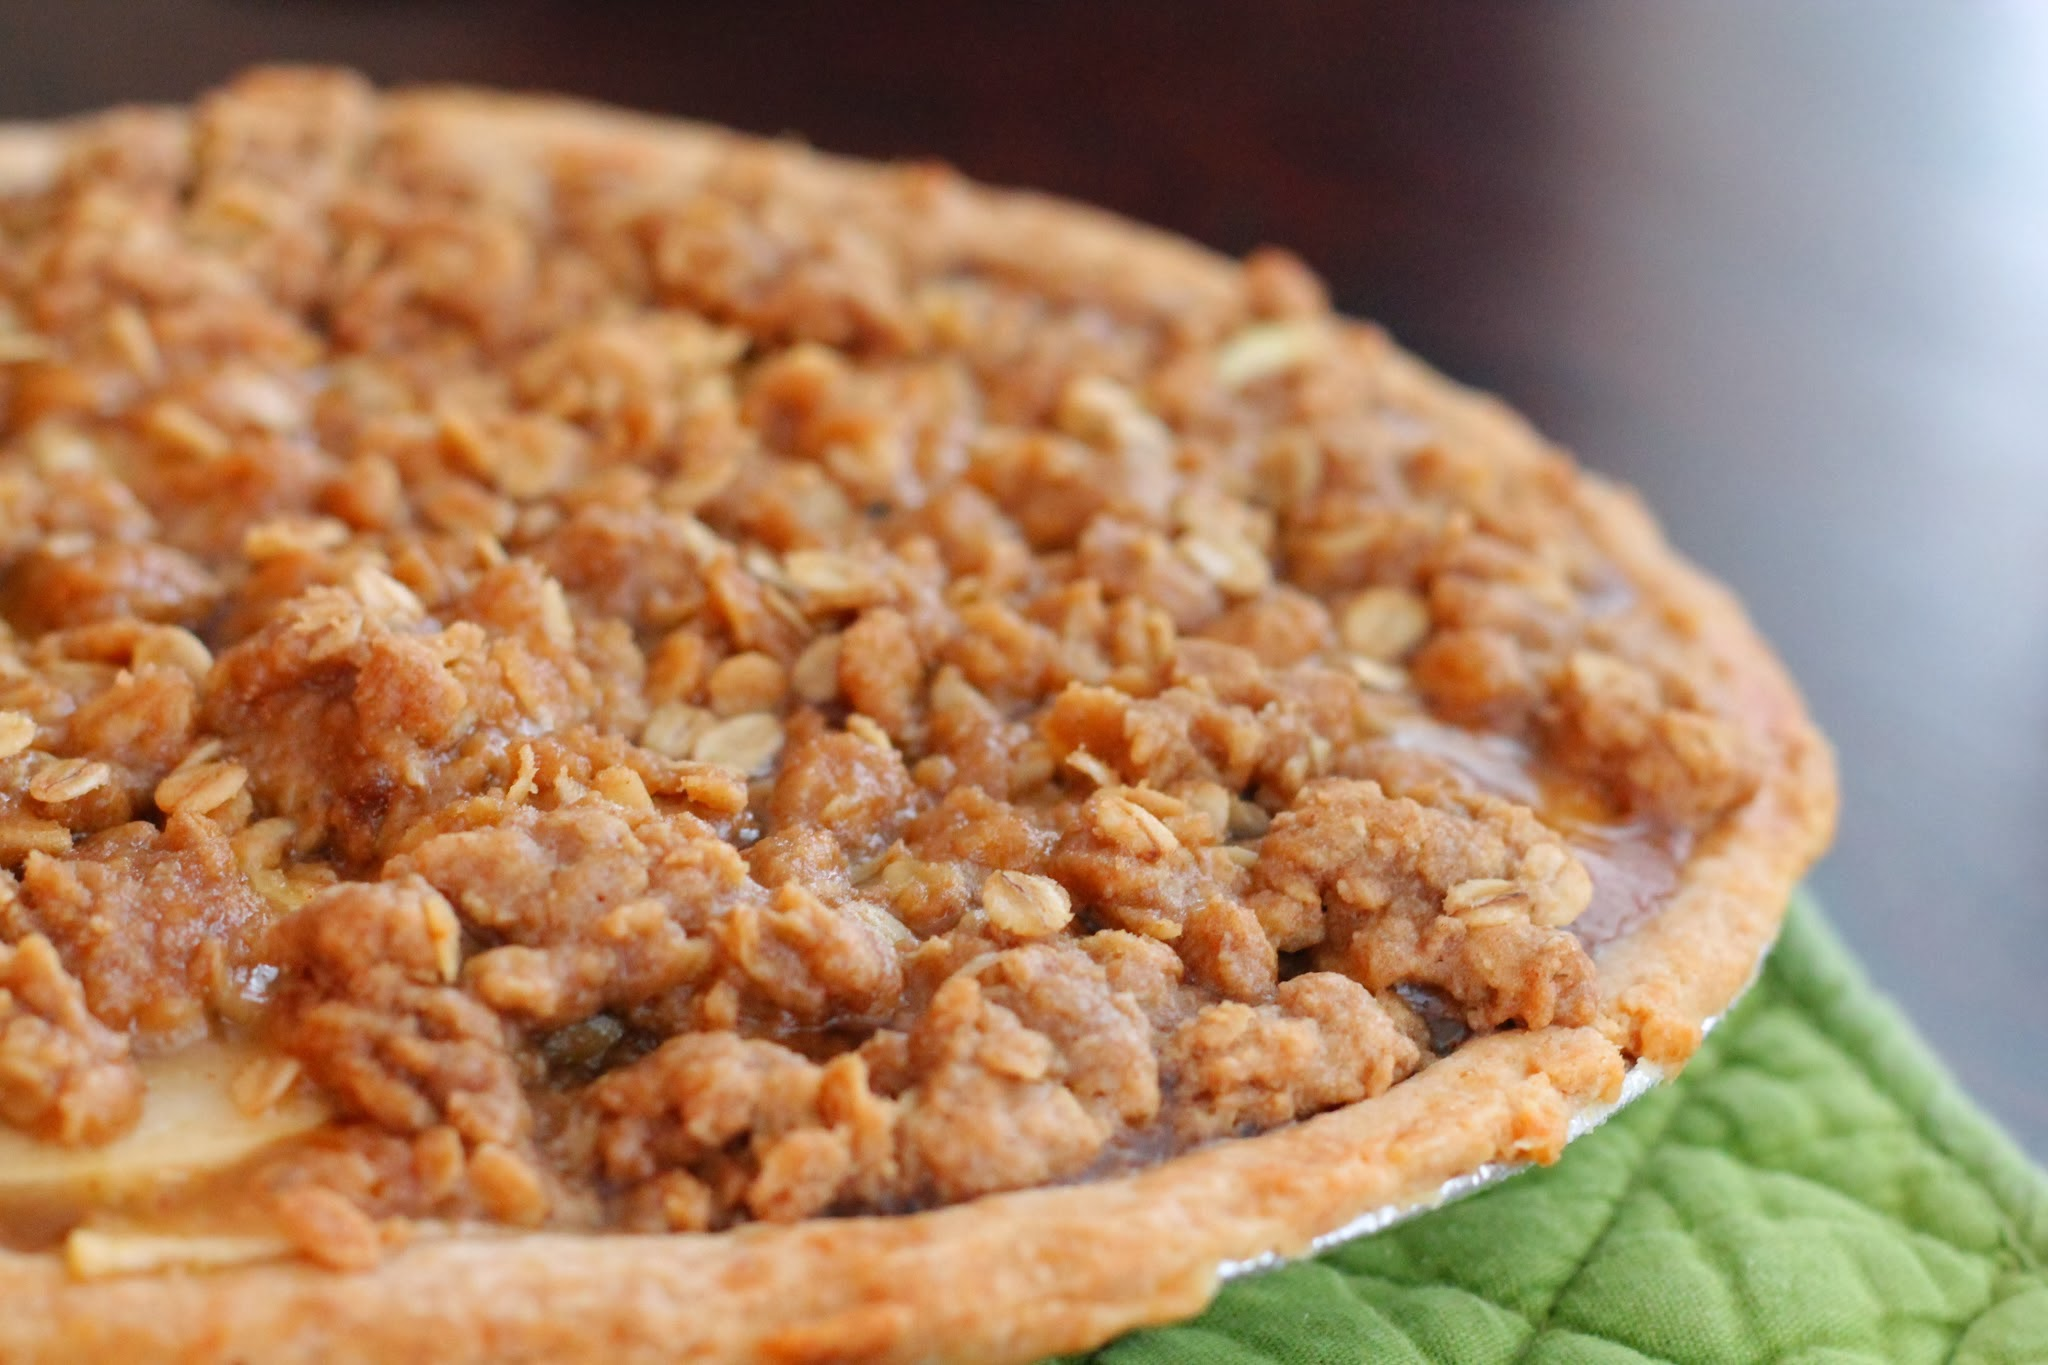 Recipe for dutch apple pie. Traditional dutch apple pie recipe. Dutch apple pie recipe with oats. Southern living dutch apple pie recipe. Dutch apple pie pioneer woman. Easy apple pie recipe. Pennsylvania dutch apple pie. Grandmas dutch apple pie recipe. #apple #pie #applepie #thanksgiving #holiday #dessert